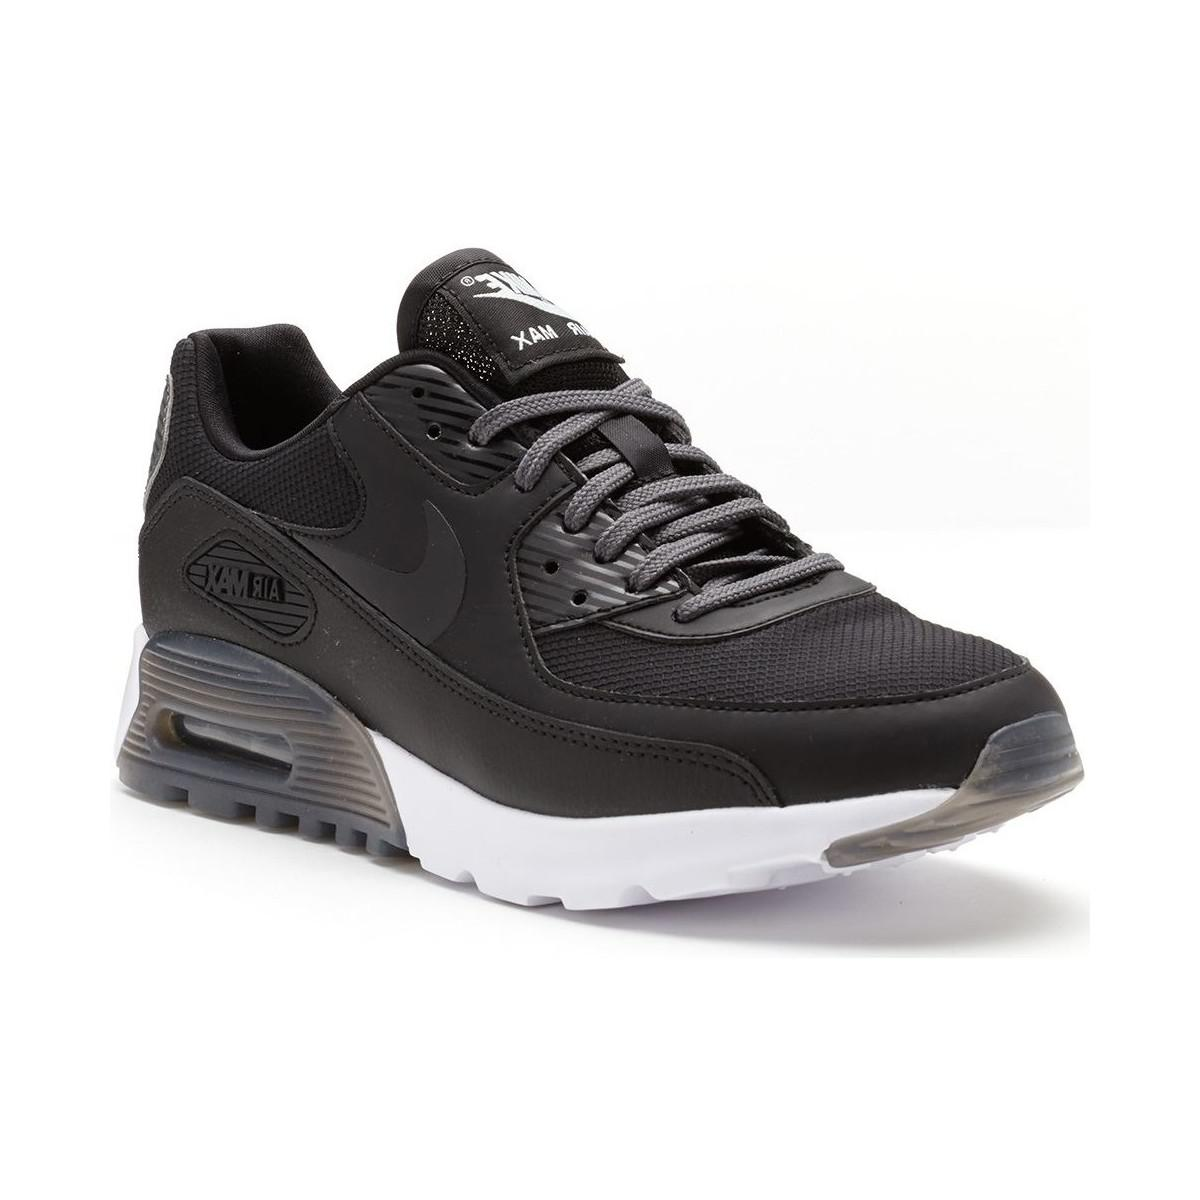 Nike Air Max 90 Ultra Essential Women Trainers in White 7249 women's in Discount Pre Order DbEVB